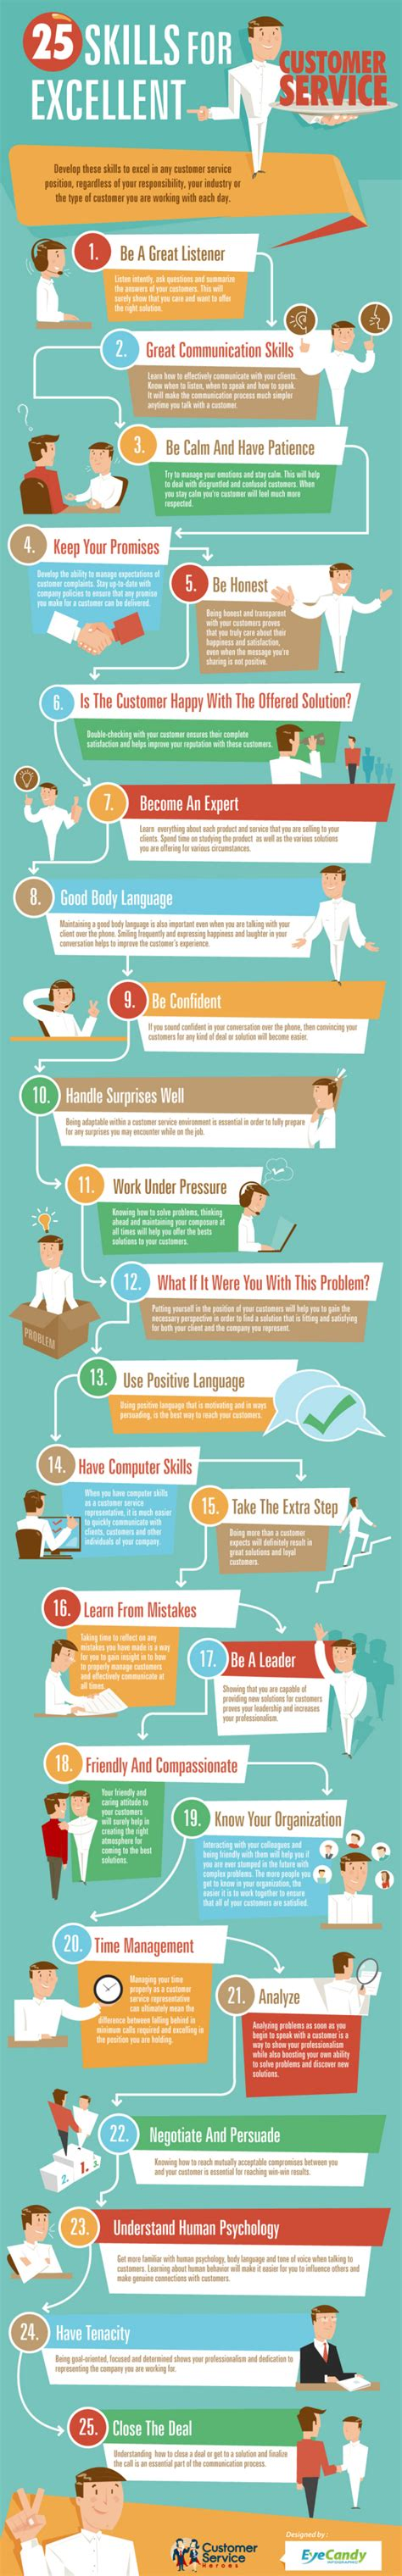 25 skills for excellent customer service infographic